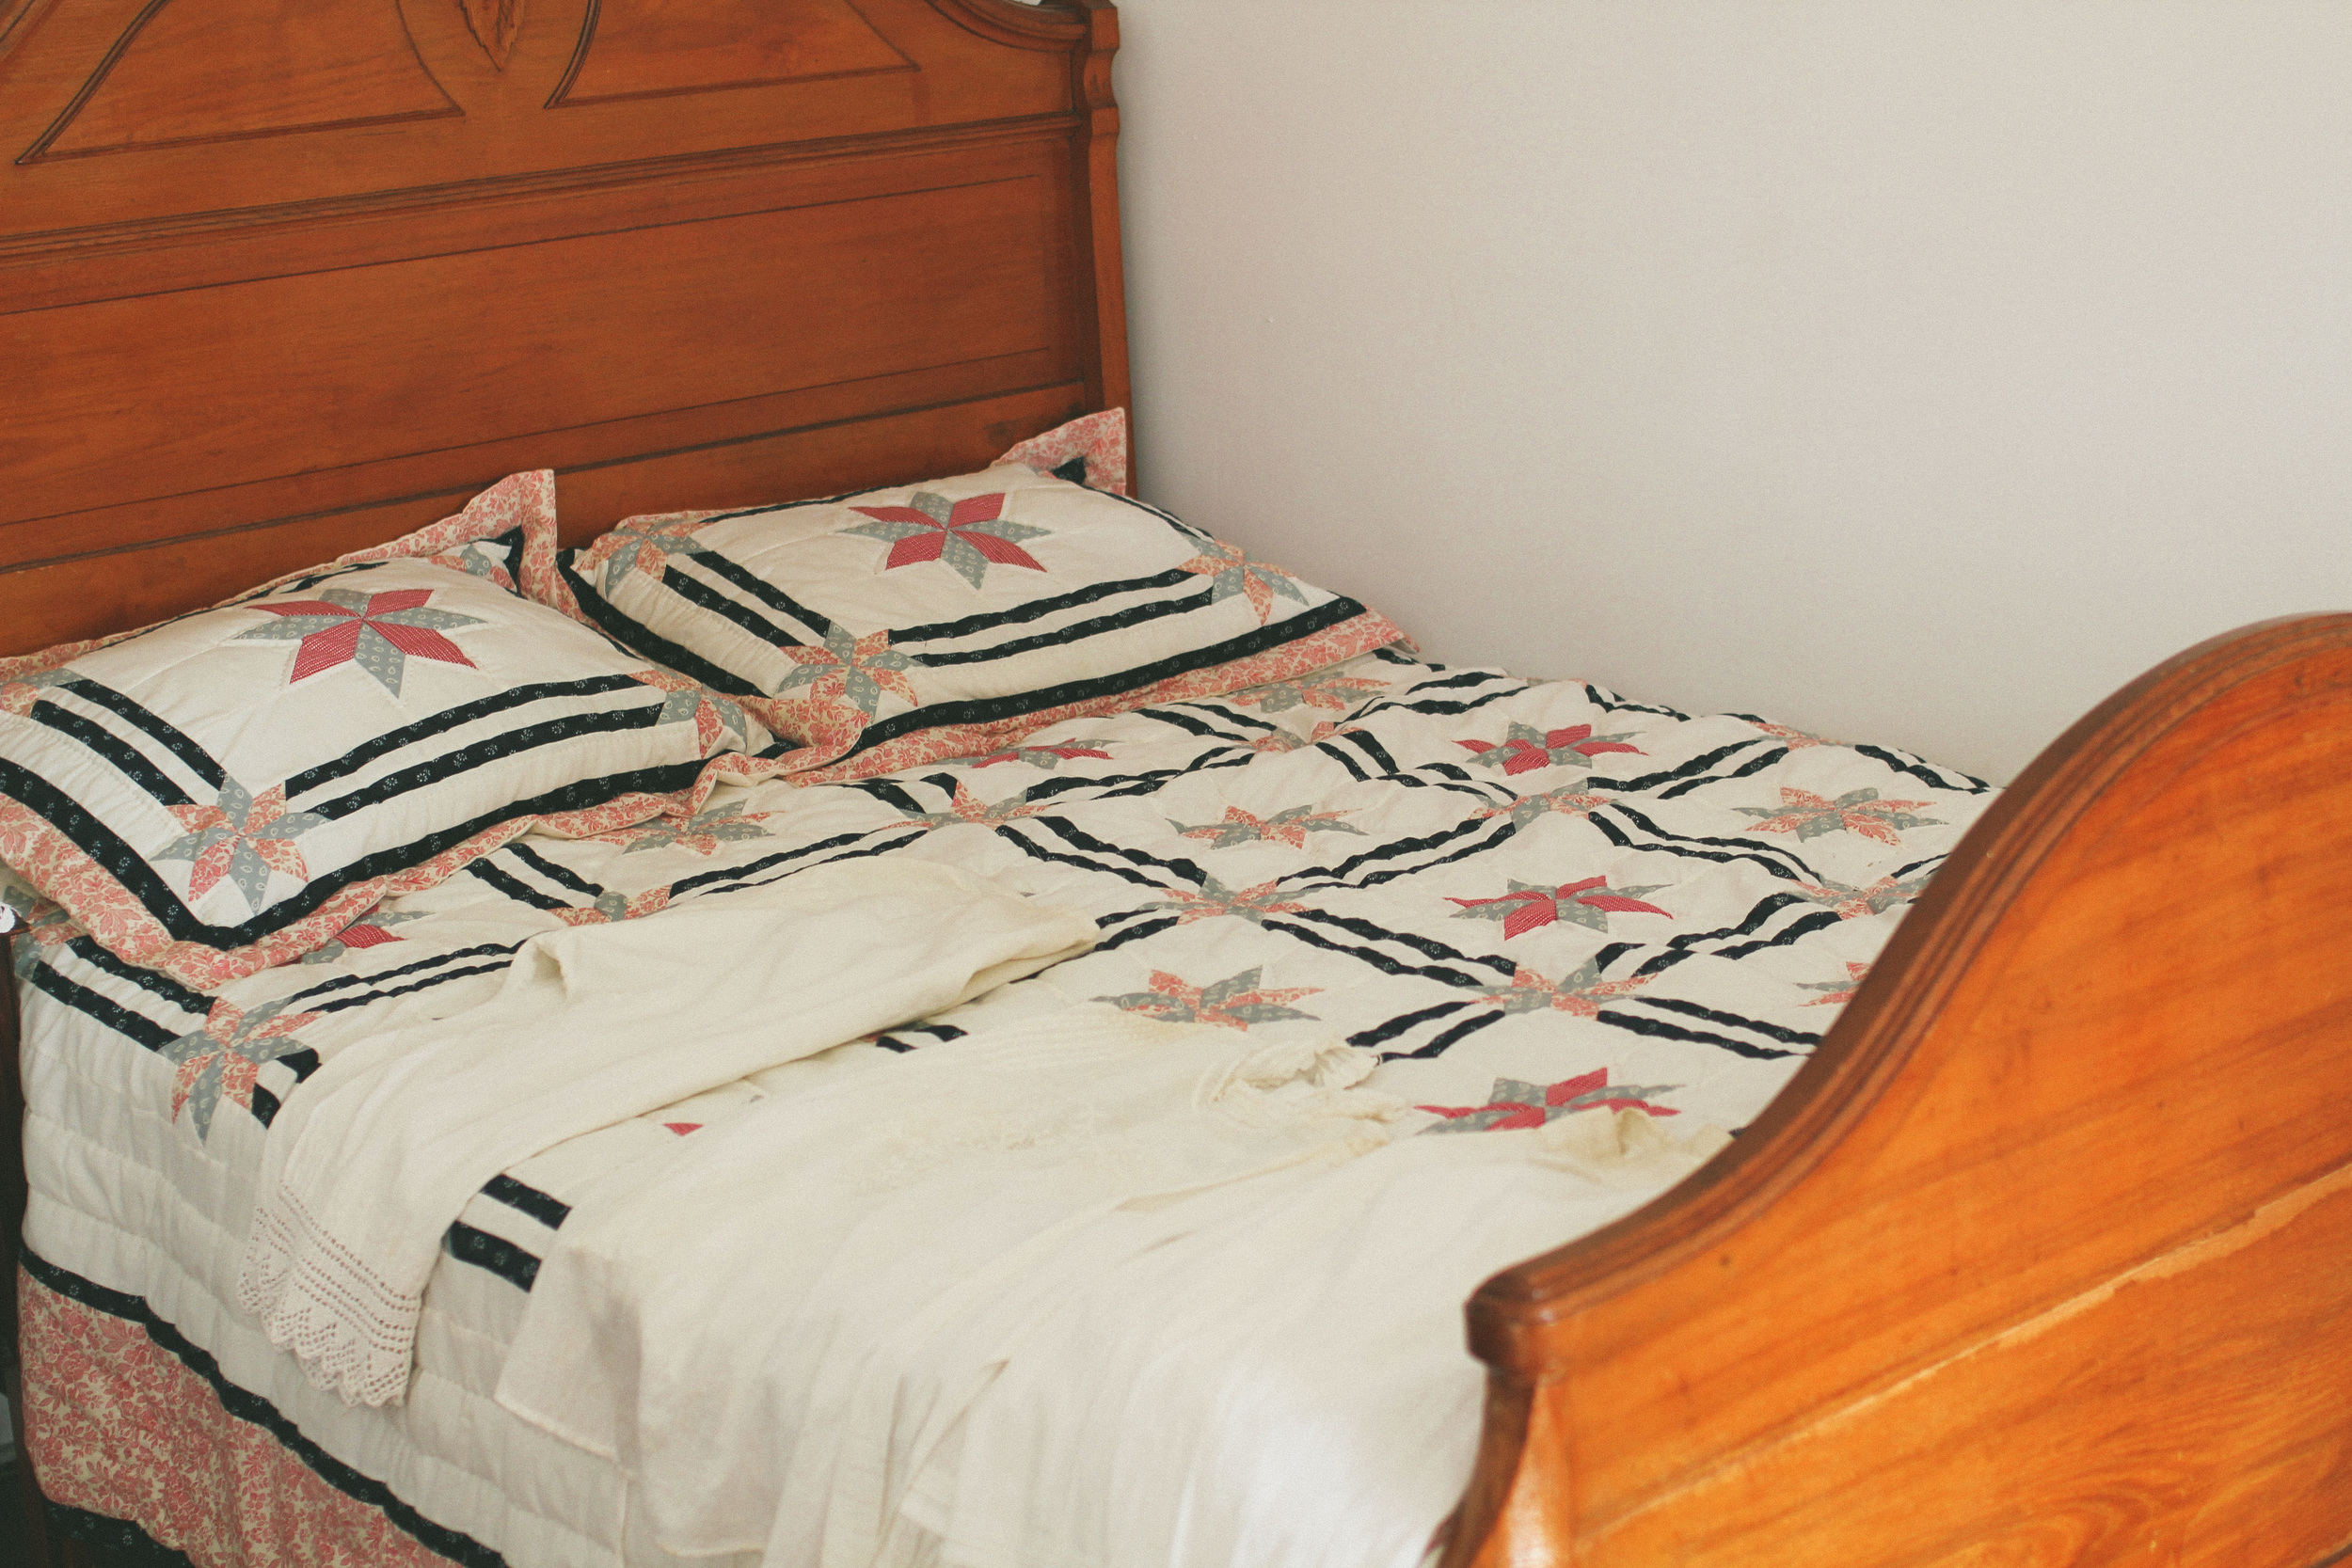 Can I steal this bedding?